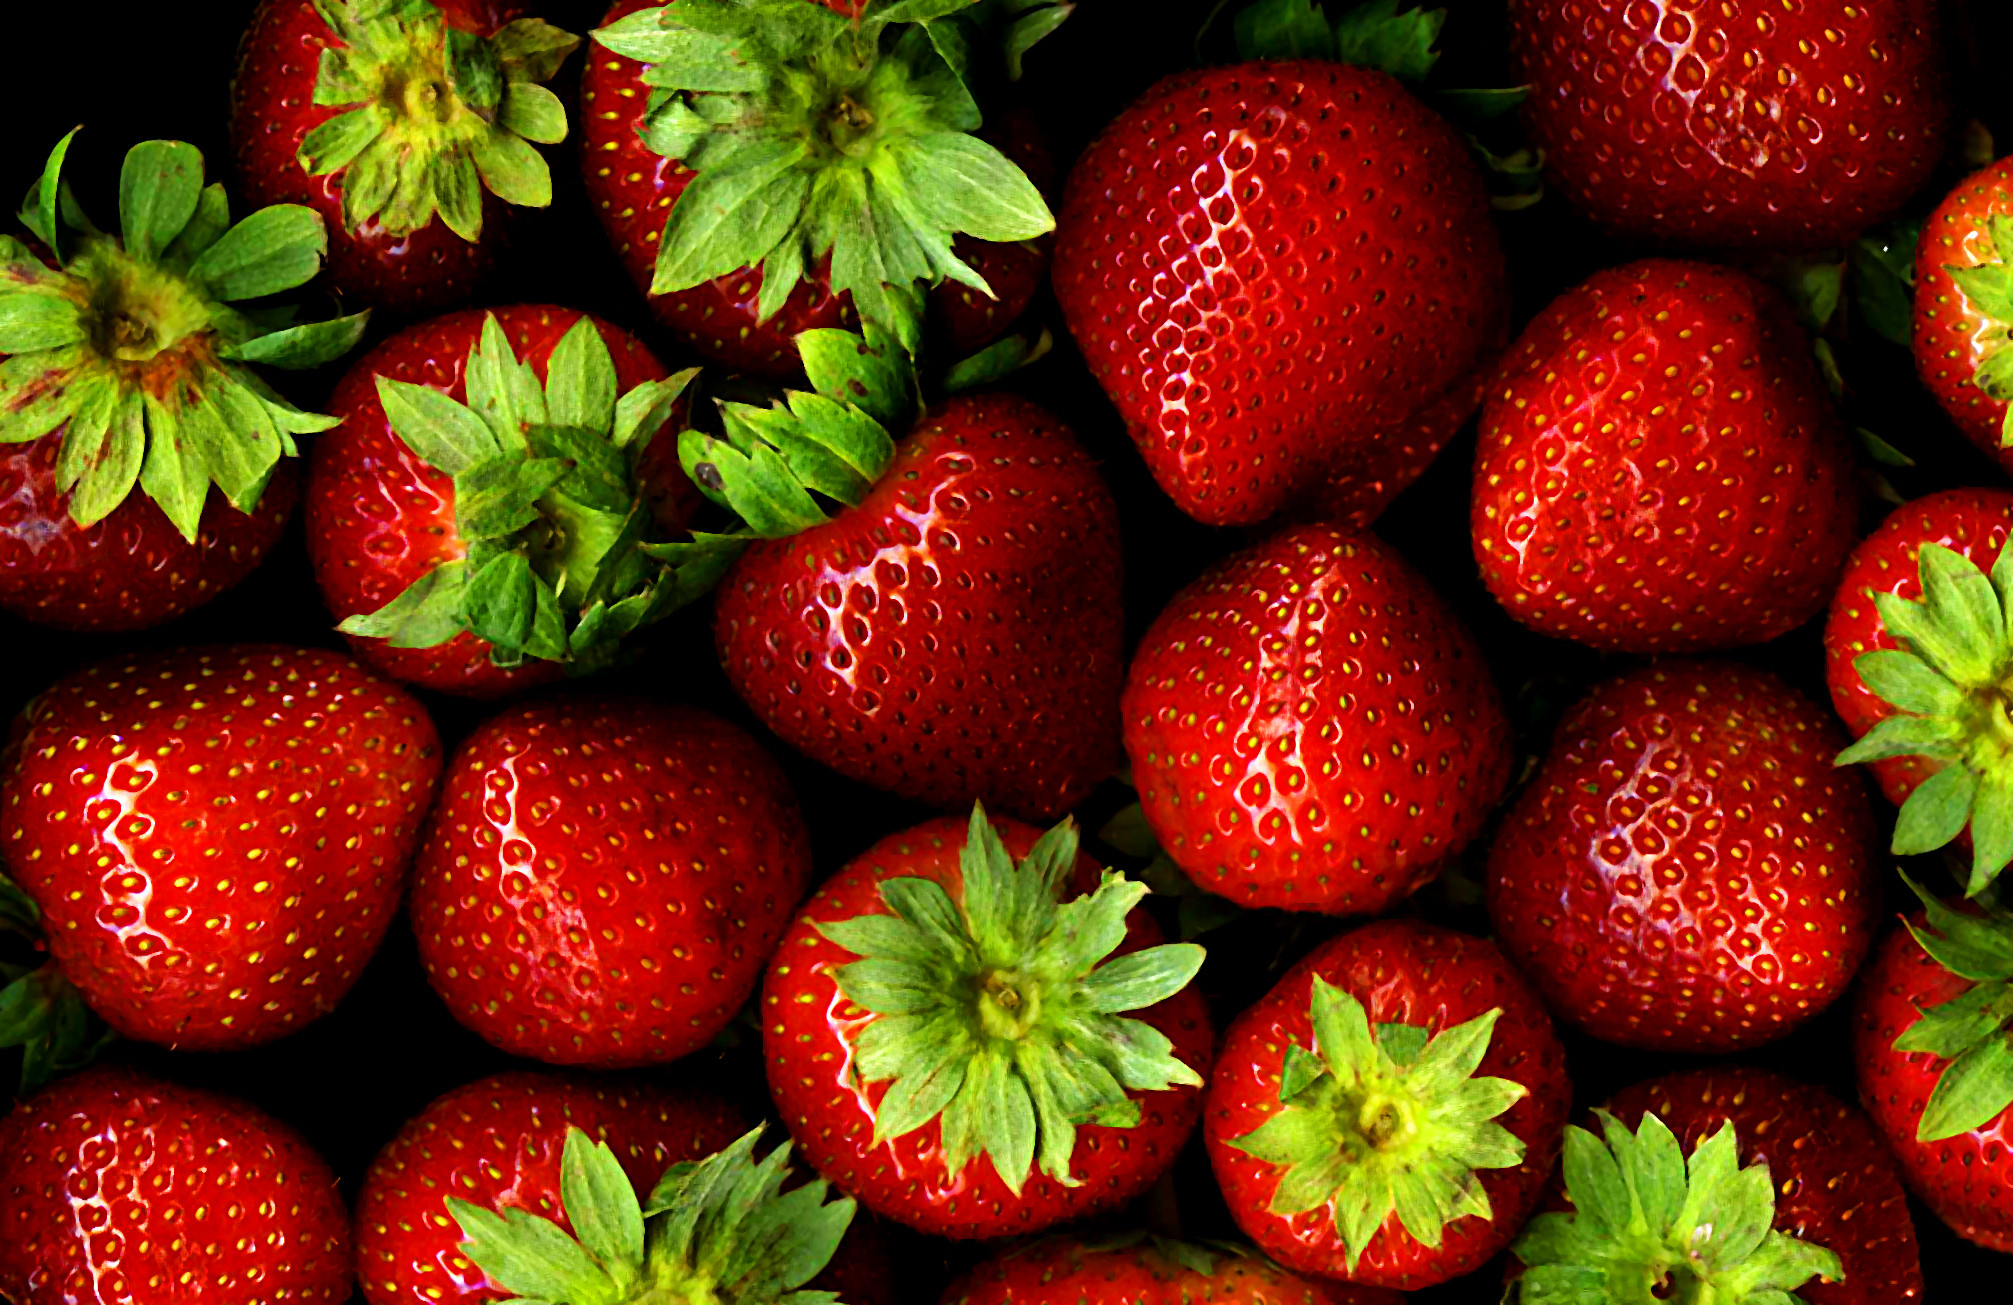 2013x1305 Strawberries images Juicy Red Strawberries ♡ HD wallpaper and background  photos